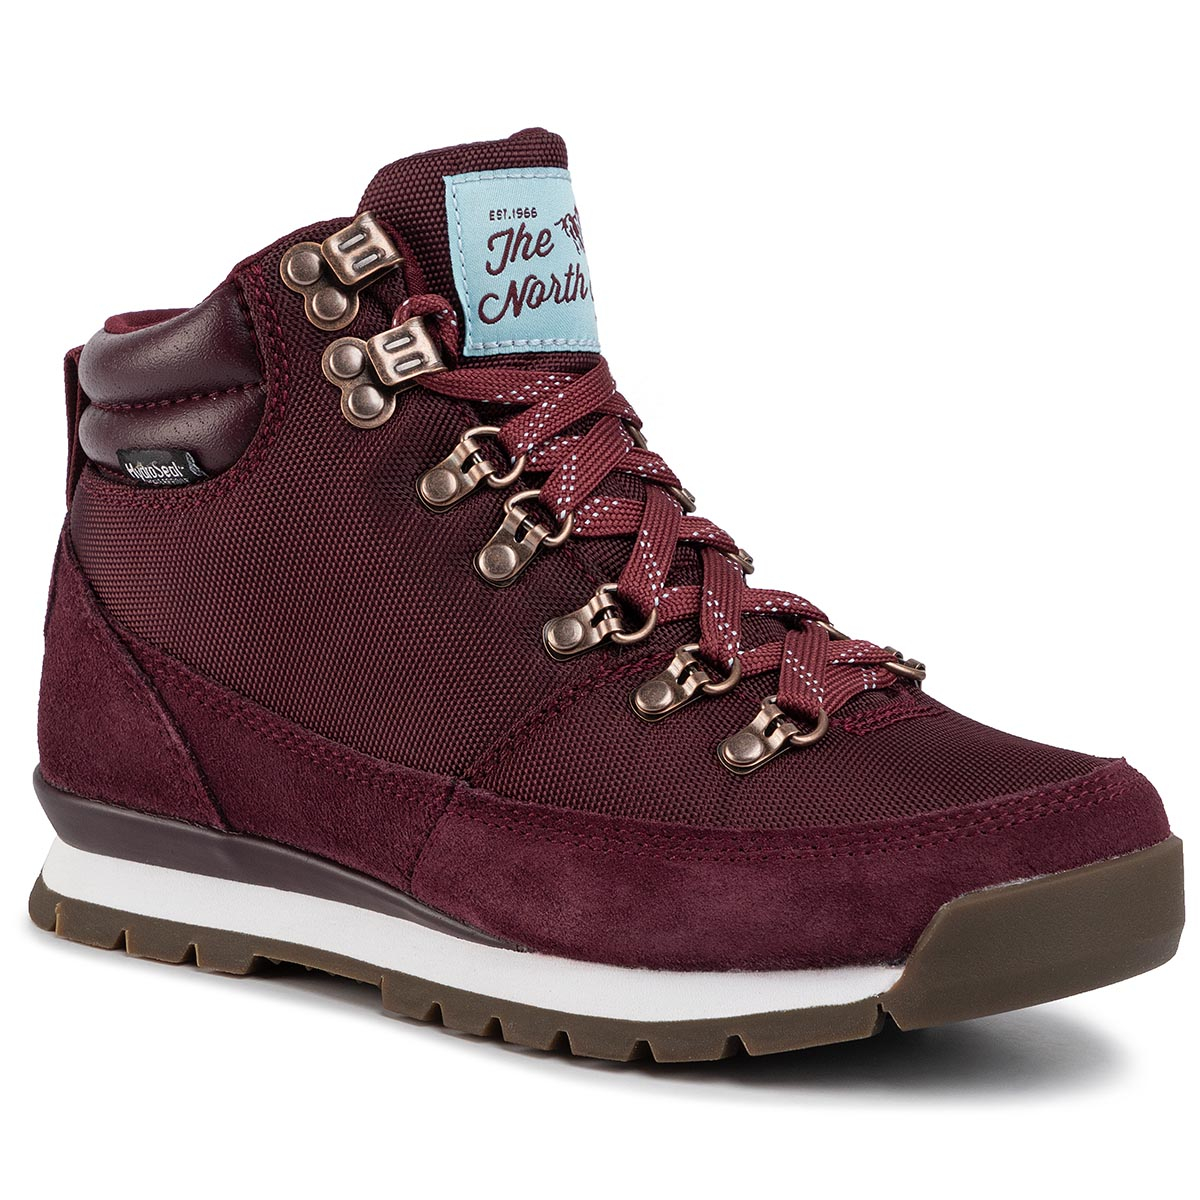 Trekkings The North Face - Back-To-Berkeley Redux Nf00clu7gu3 Deep Garnet Red/Stratosphere Blue imagine epantofi.ro 2021